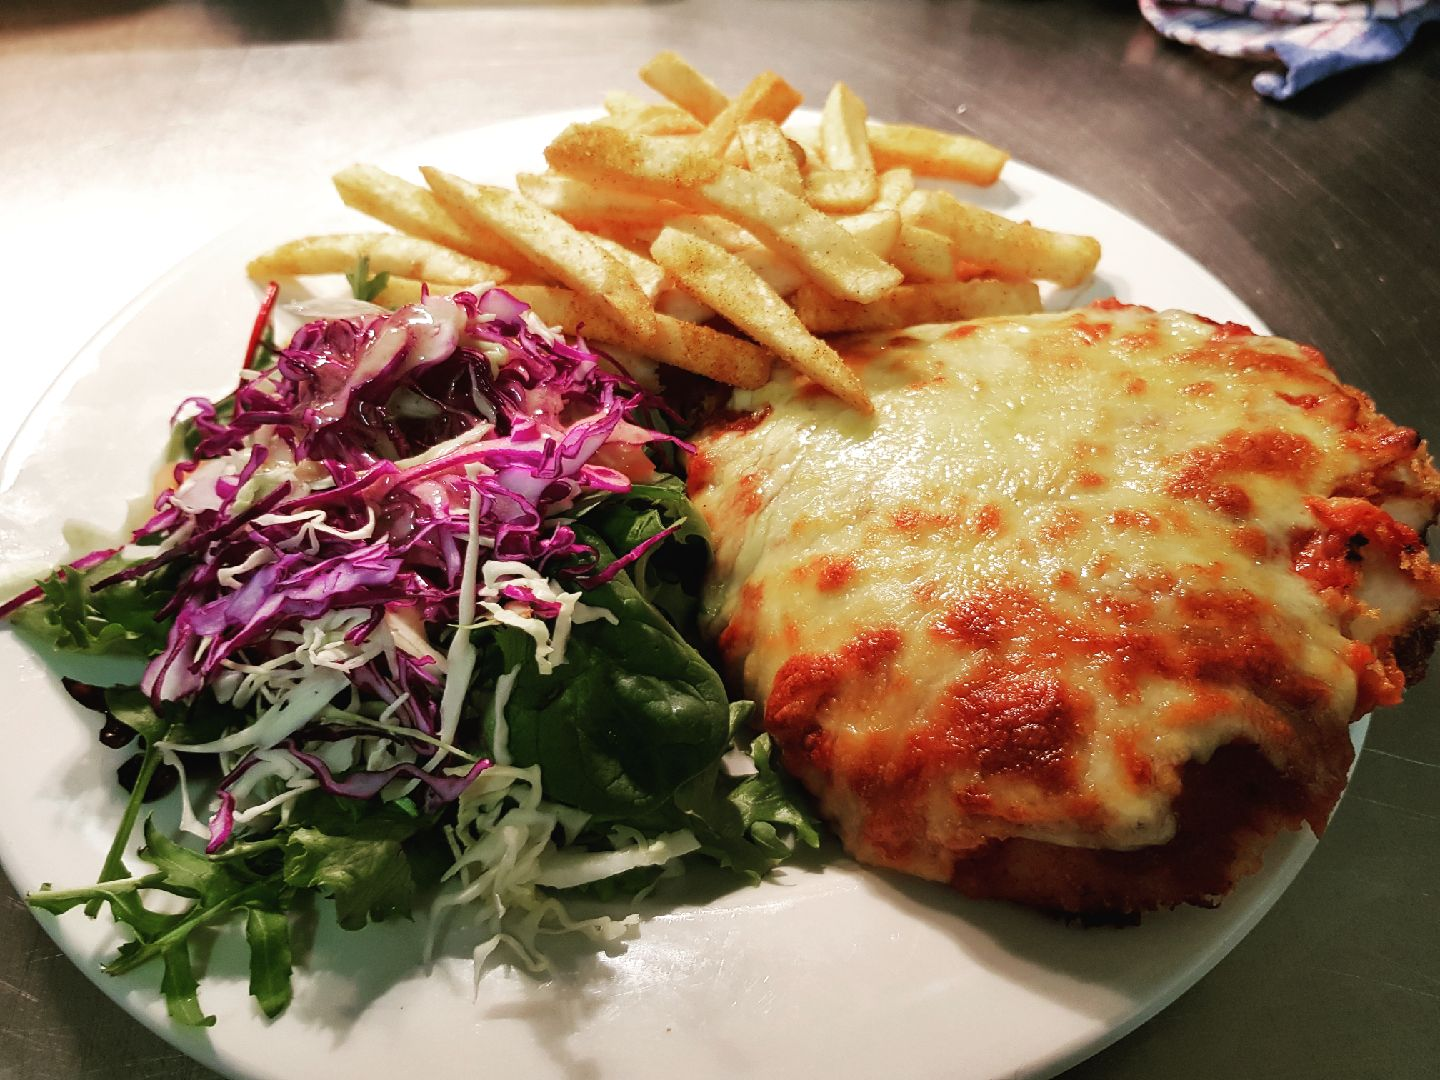 $25 PARMA & PINT DEAL EVERY THURSDAY 6-9PM